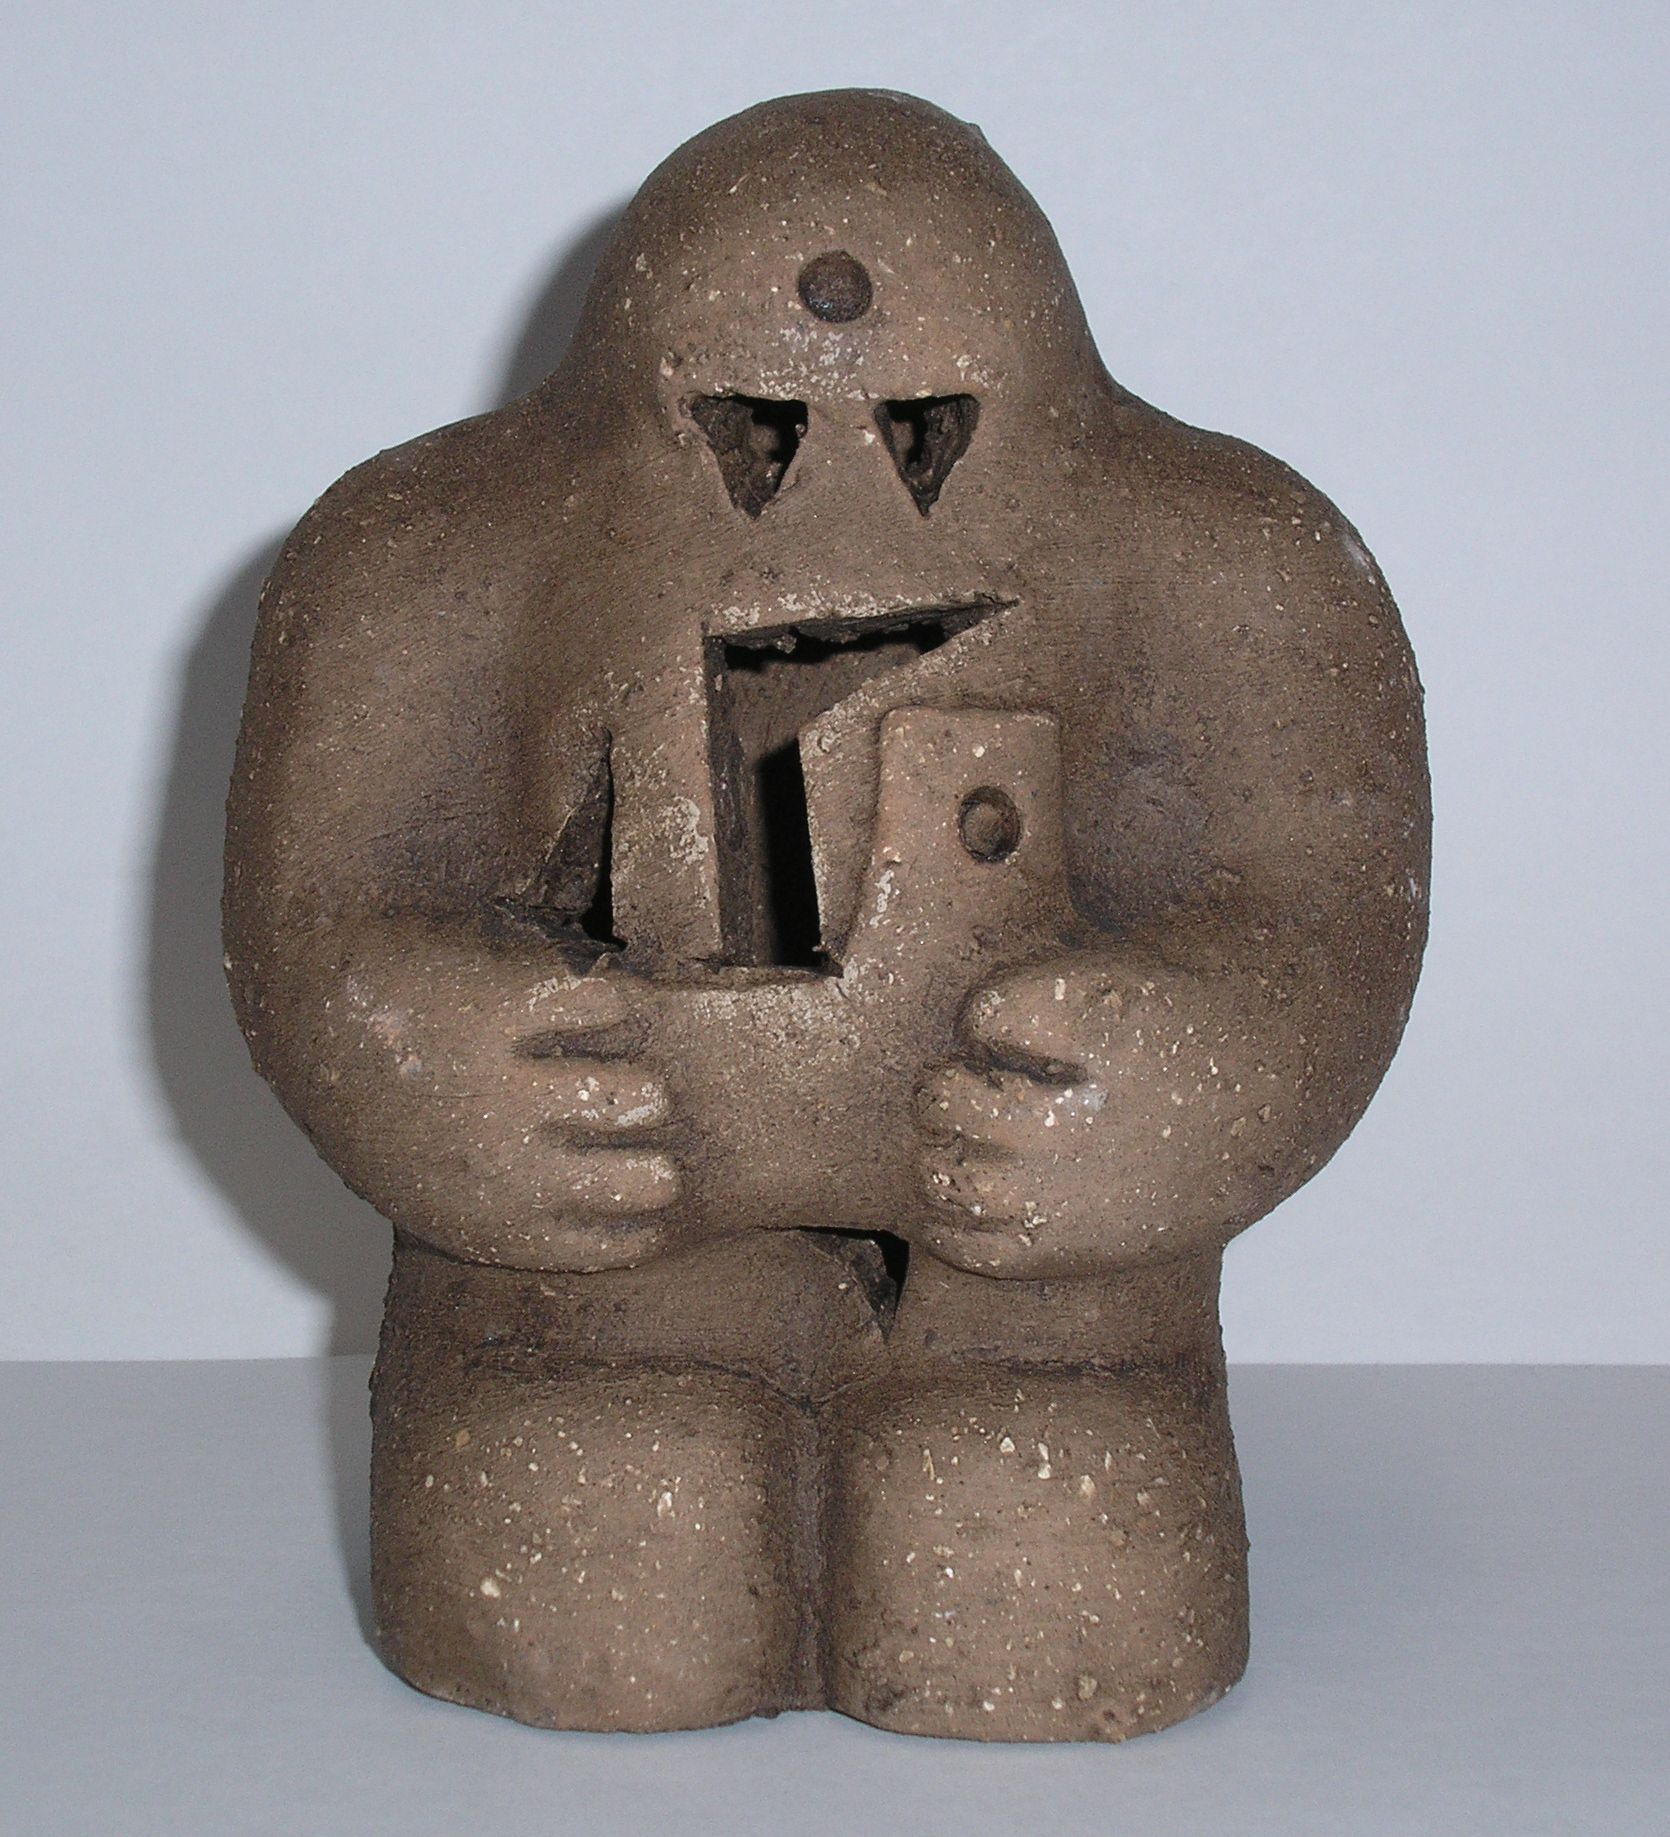 By user Thander (http://pt.wikipedia.org/wiki/Ficheiro:Golem.JPG) [Public domain], via Wikimedia Commons